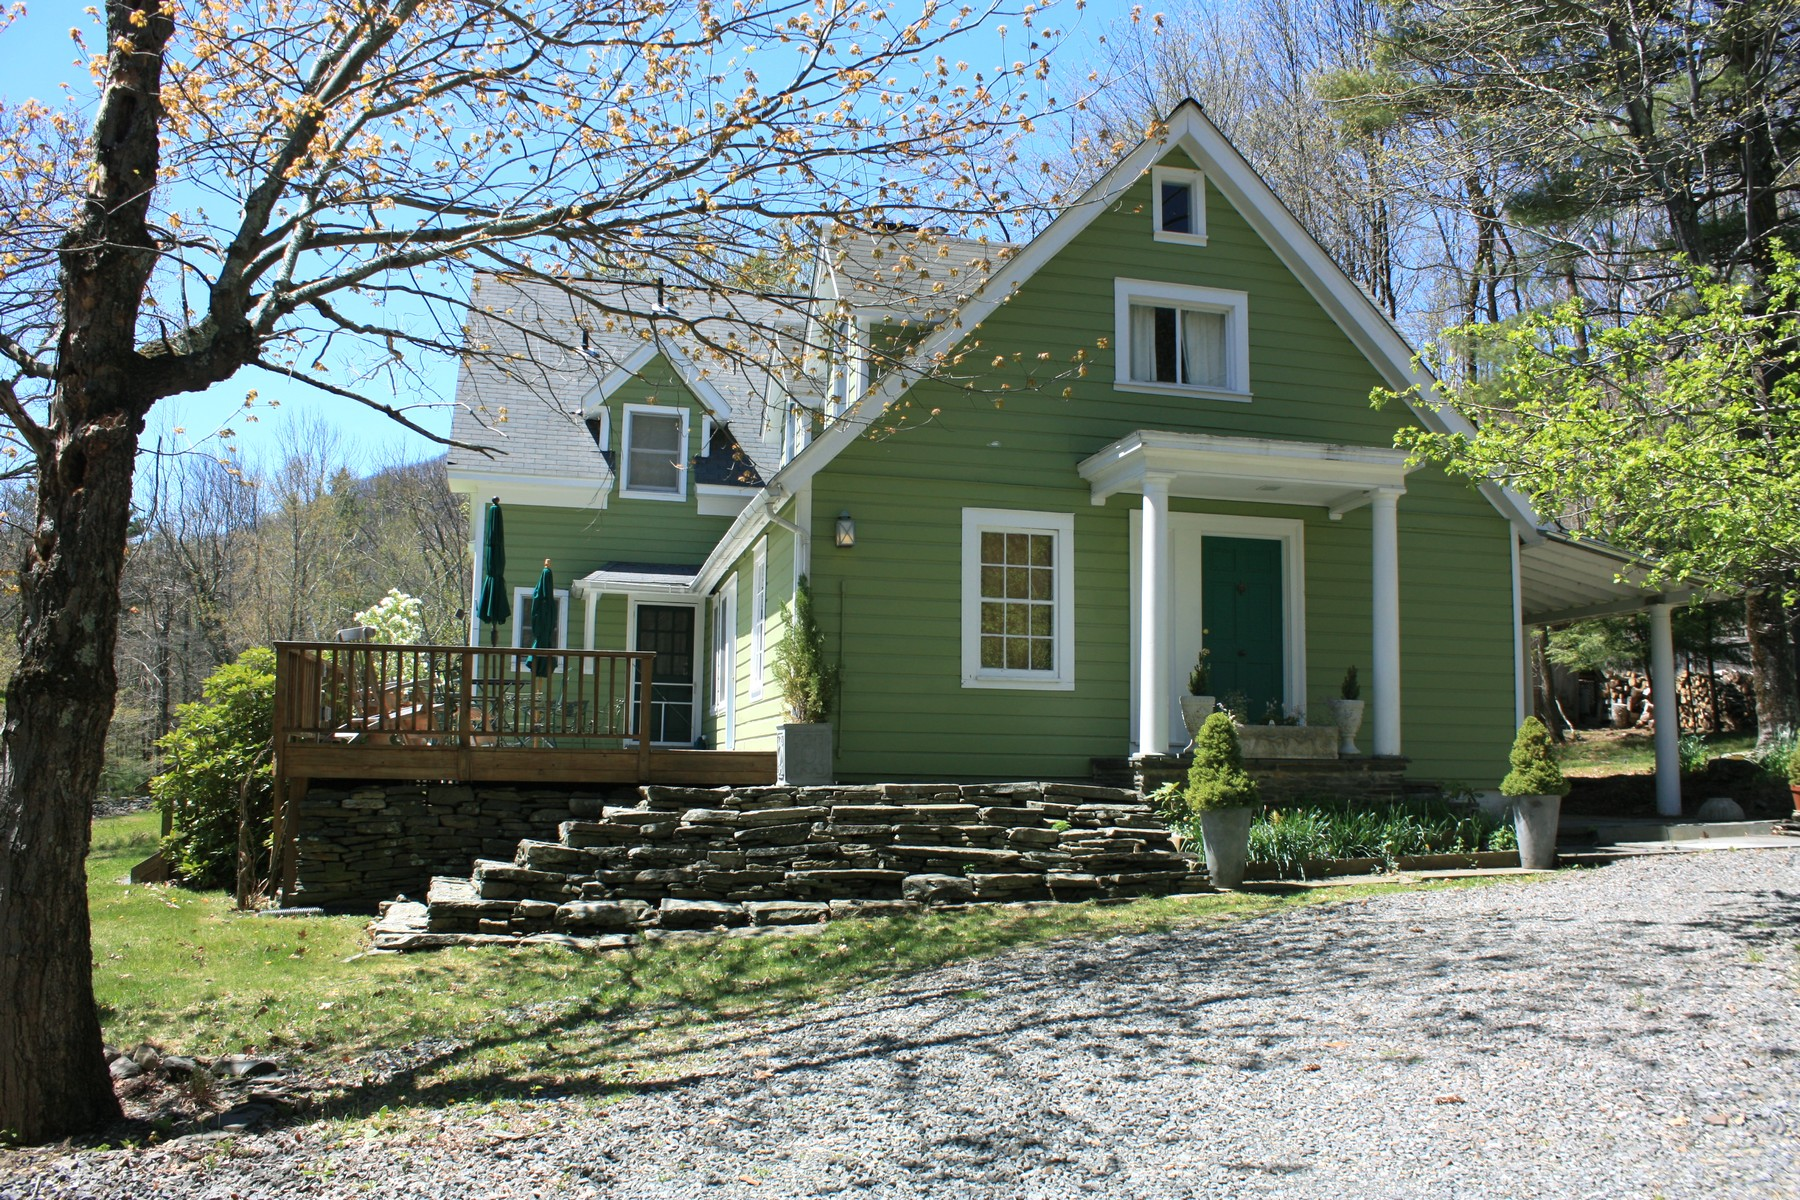 Single Family Home for Sale at Serene Woodstock Cottage 289 Mead Mountain Rd Woodstock, New York 12498 United States